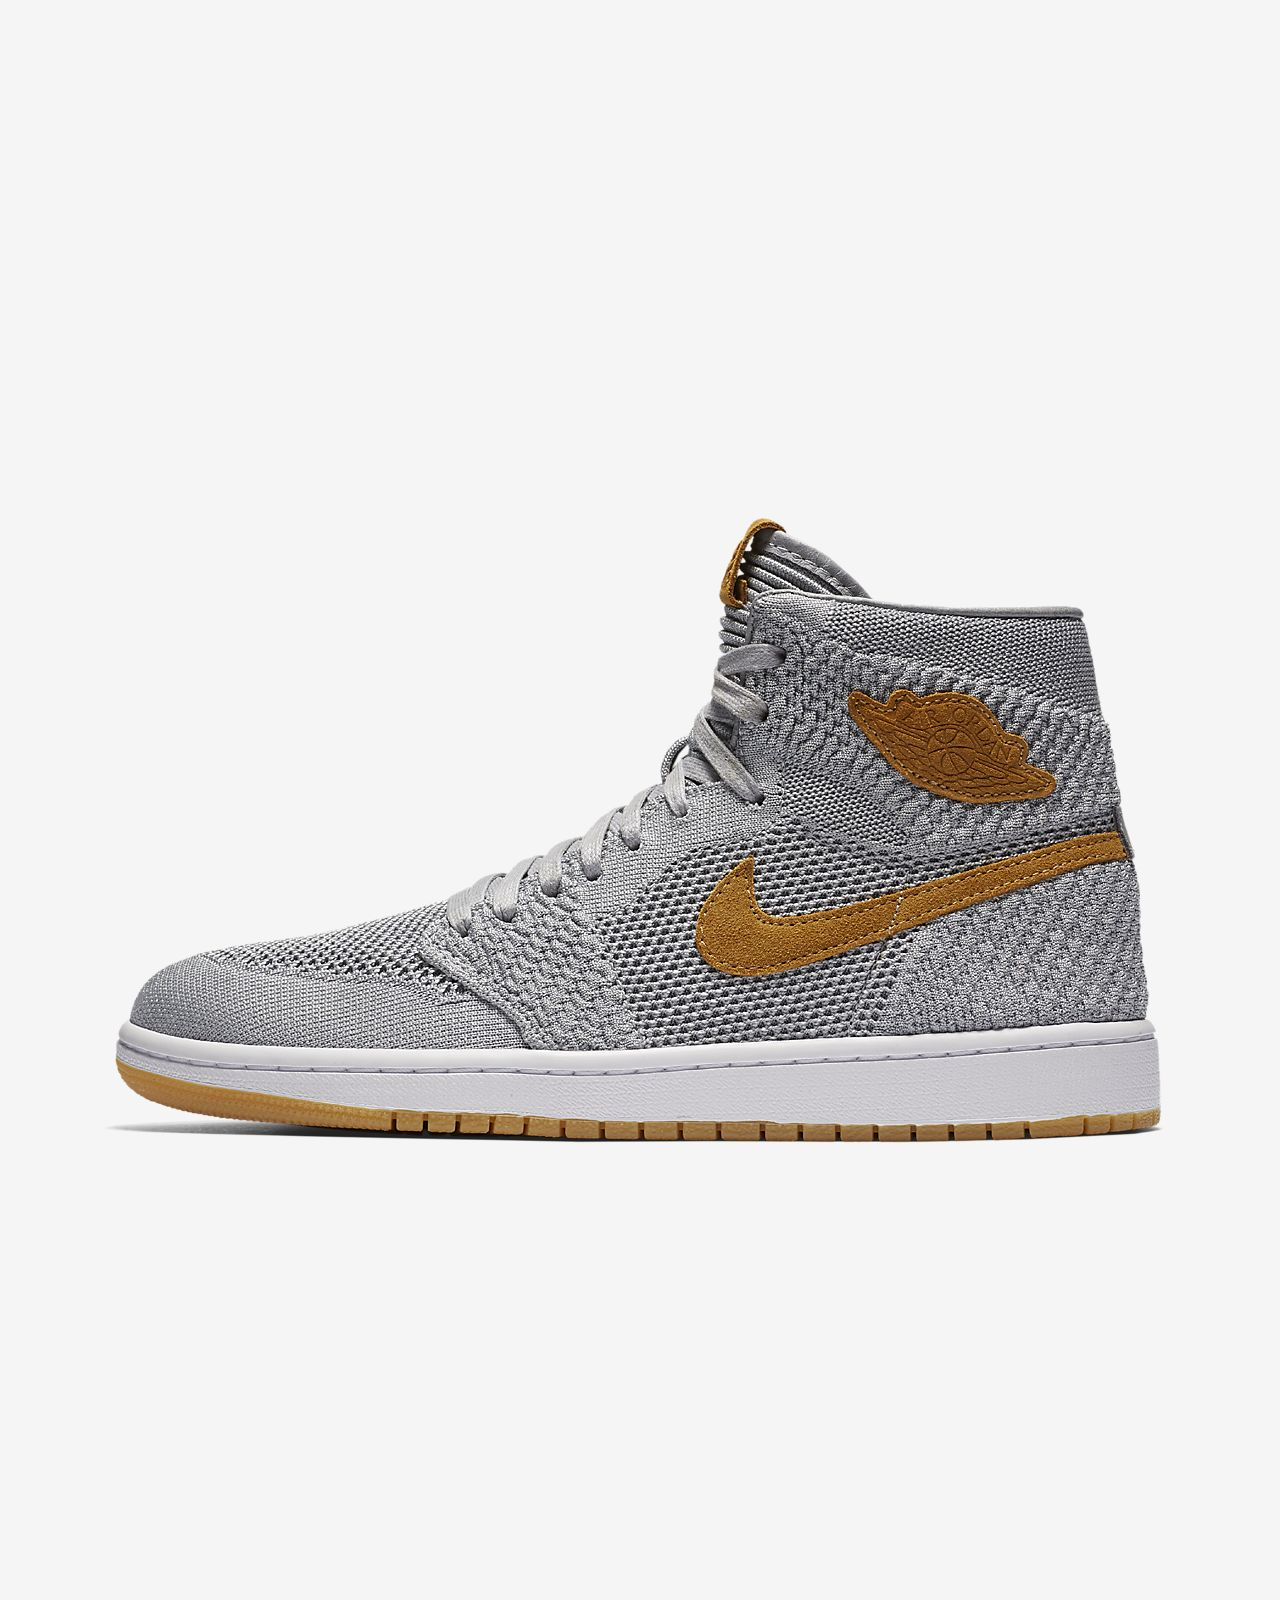 nike air jordan 1 mid grey nz